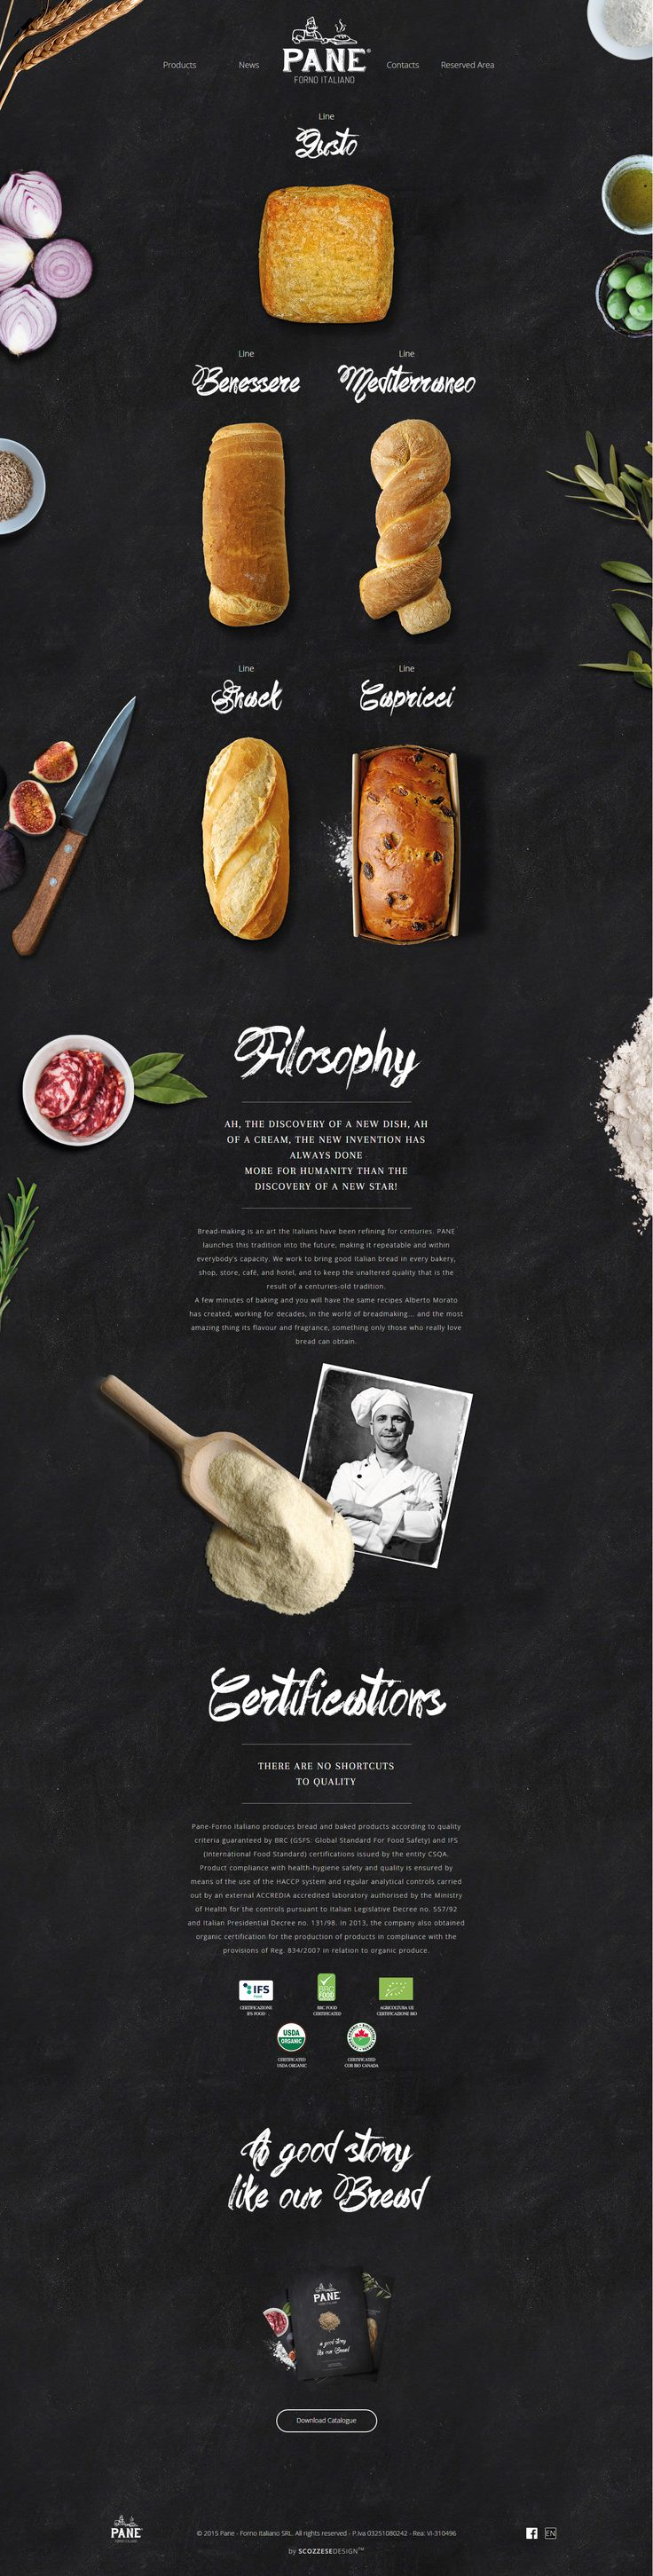 Pane. Grabbing your five senses. #webdesign #bakery #design